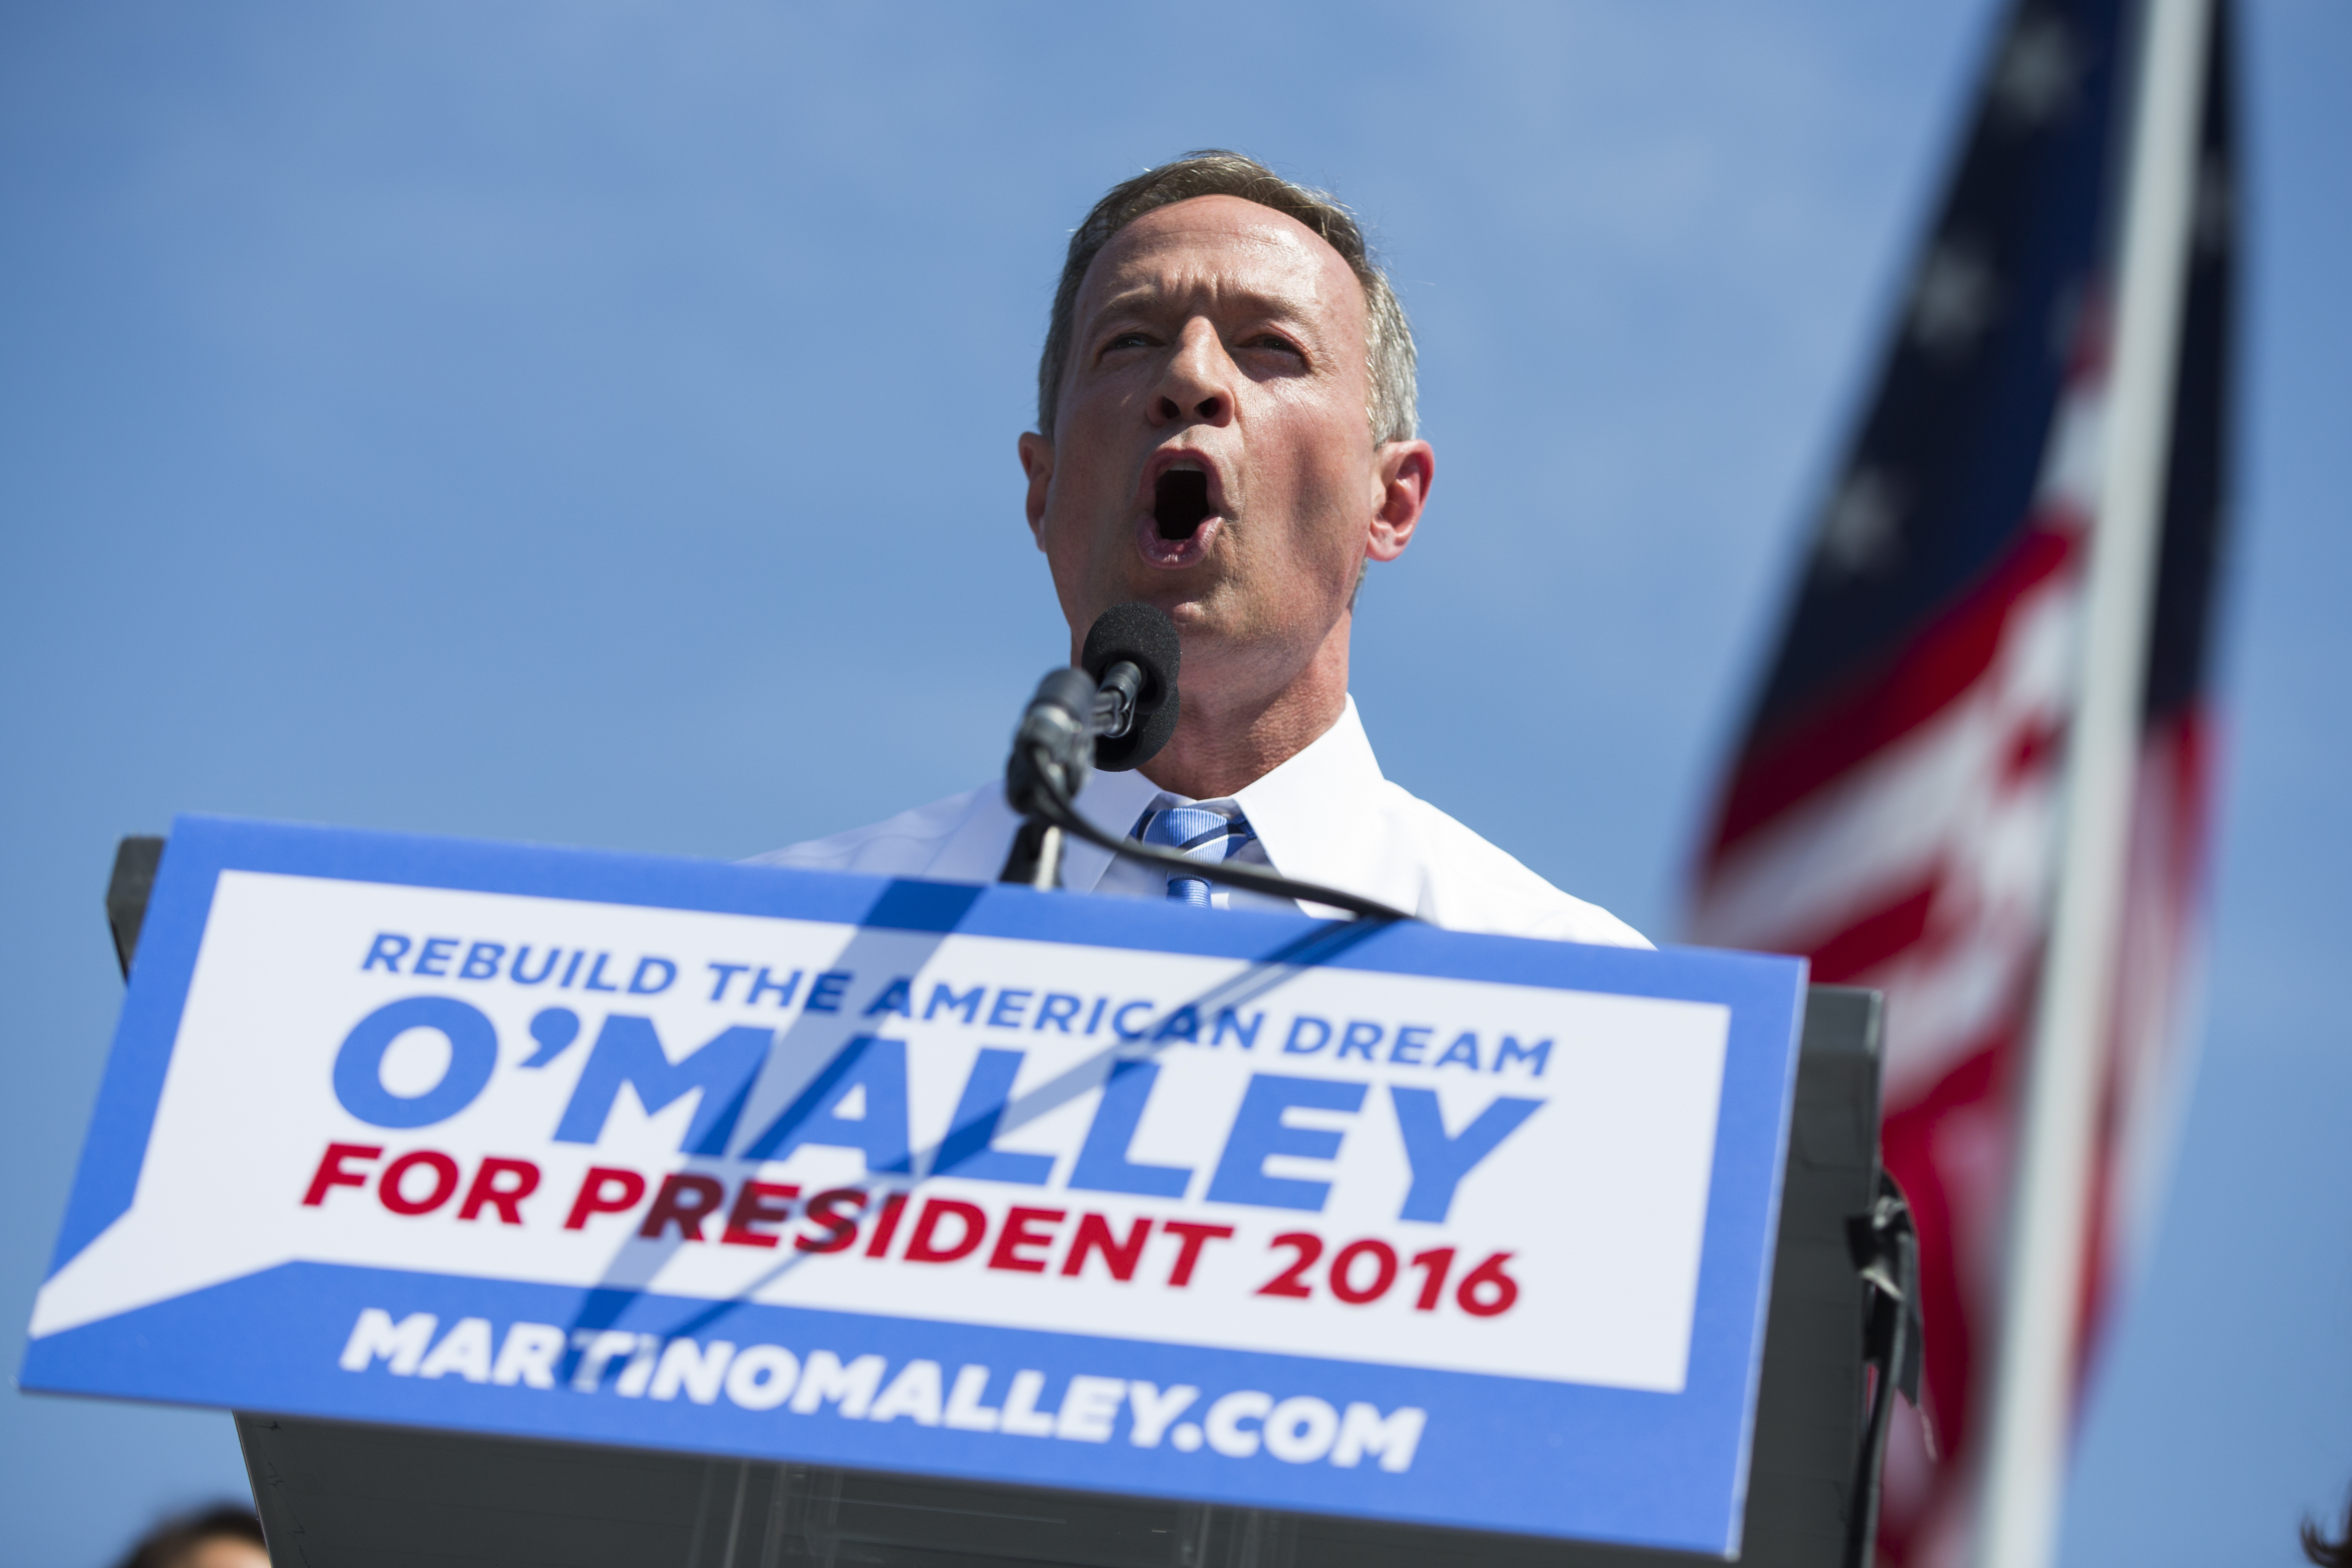 Report: Md. ethics board investigates O'Malley's purchases for mansion